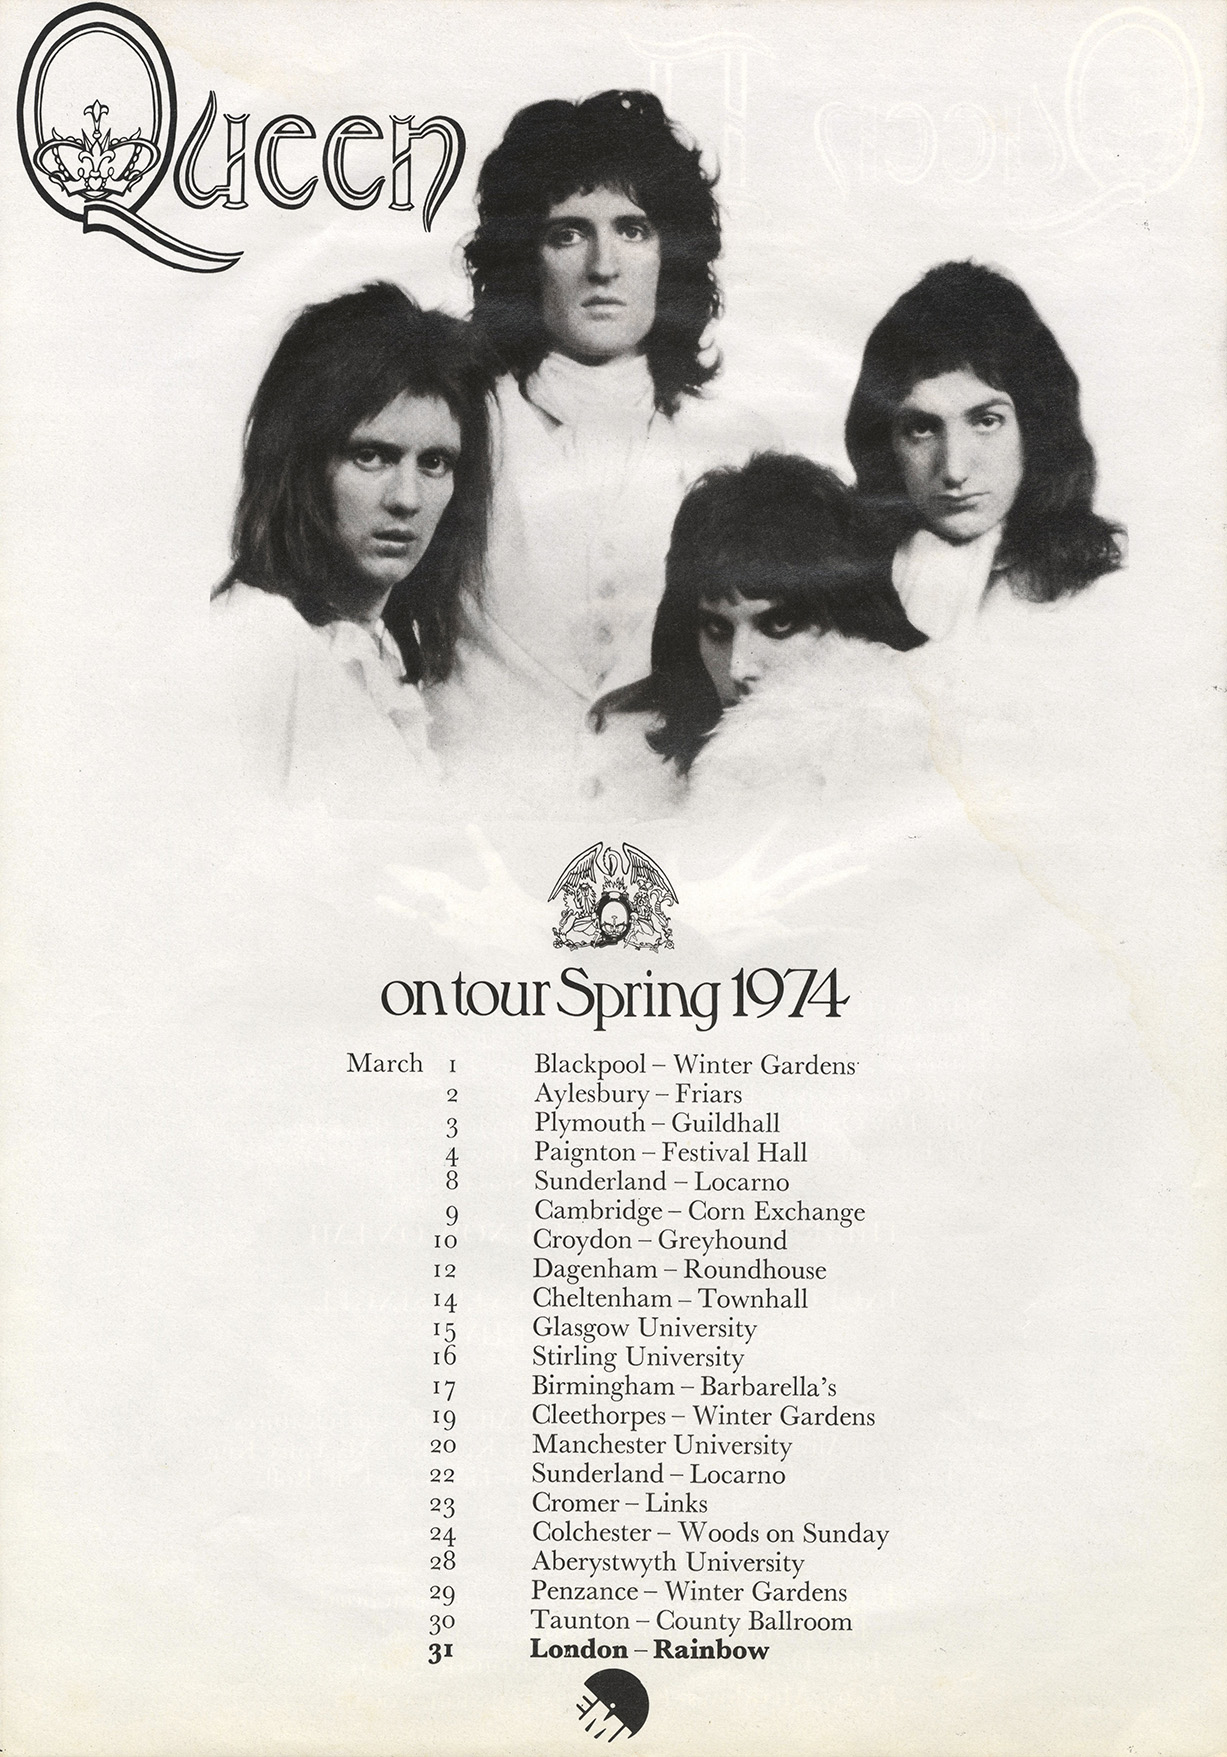 Queen on Queen II tour in the UK